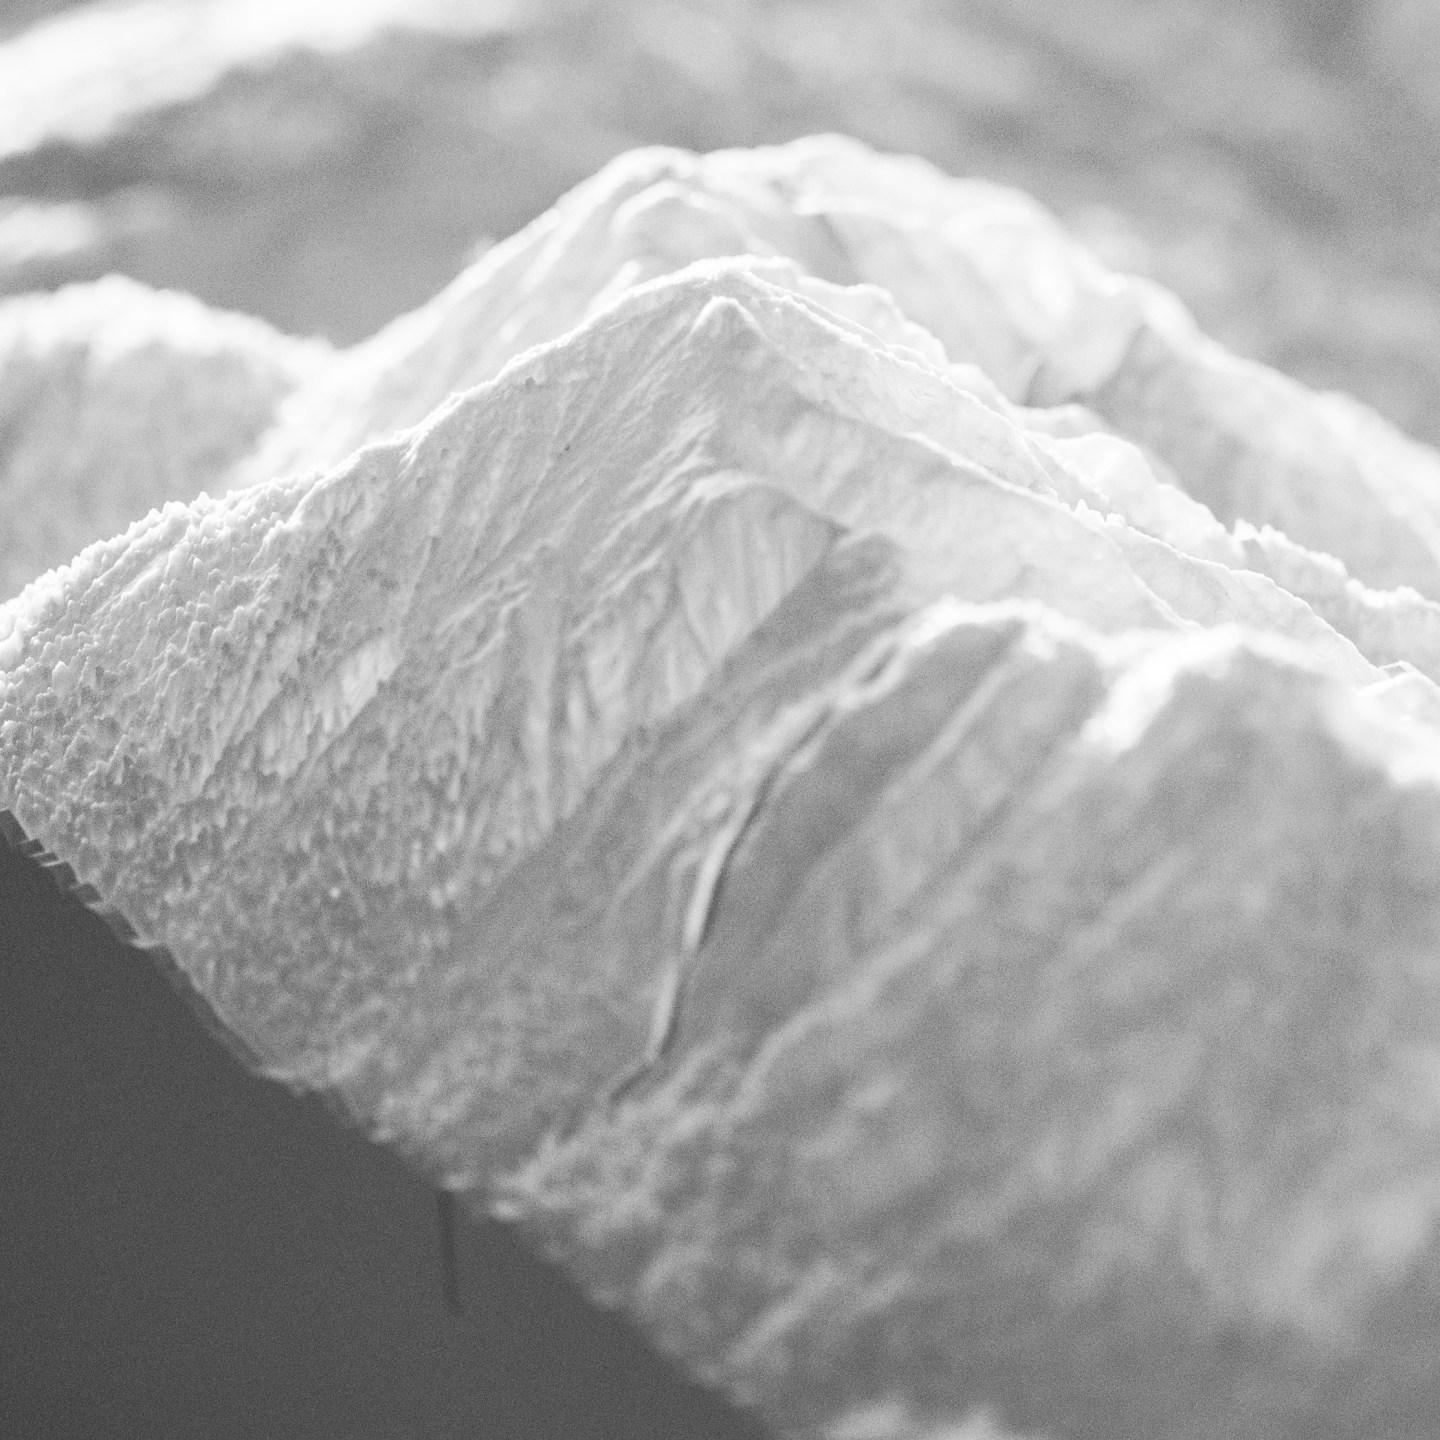 The valley of Alpbach | 3d Print in white PLA | Resarch Project at the Institute of Experimental Architecture | Funded by TVB Alpbach | Projectleader: Marc Ihle | 2016 | – © University of Innsbruck | Austria